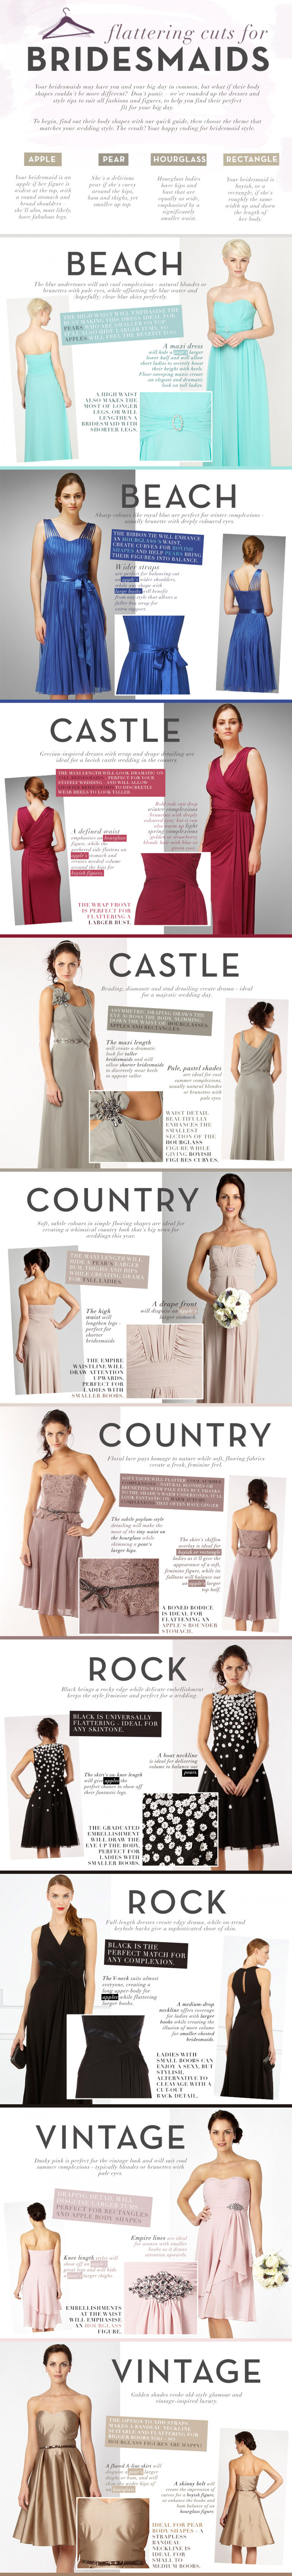 Flattering cuts for Bridesmaids Infographic